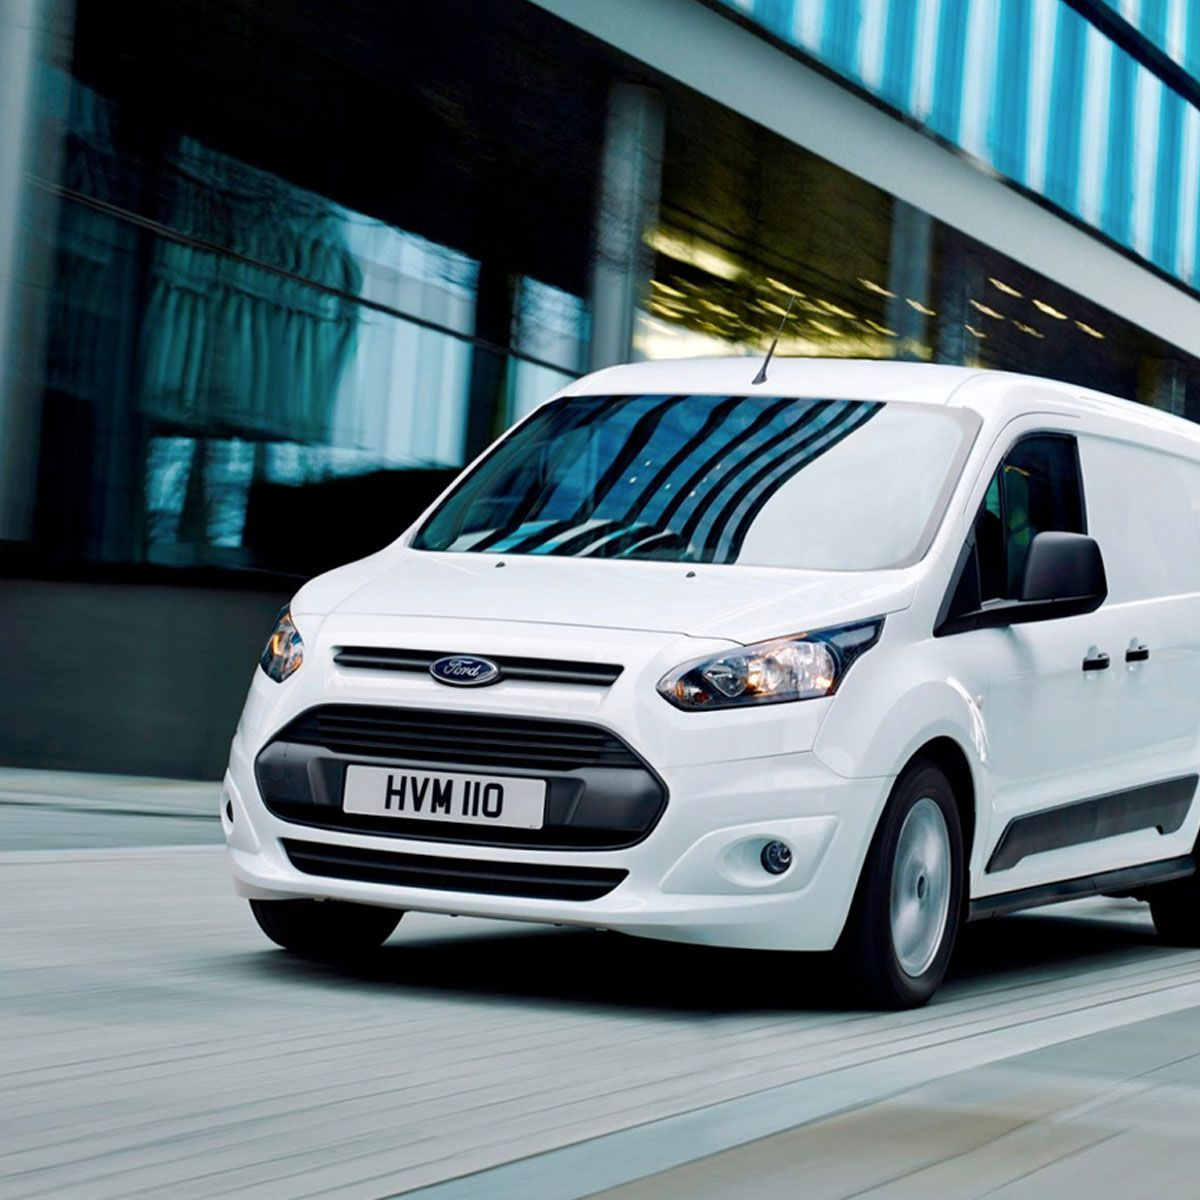 If you planning to travel abroad renting a van can be the